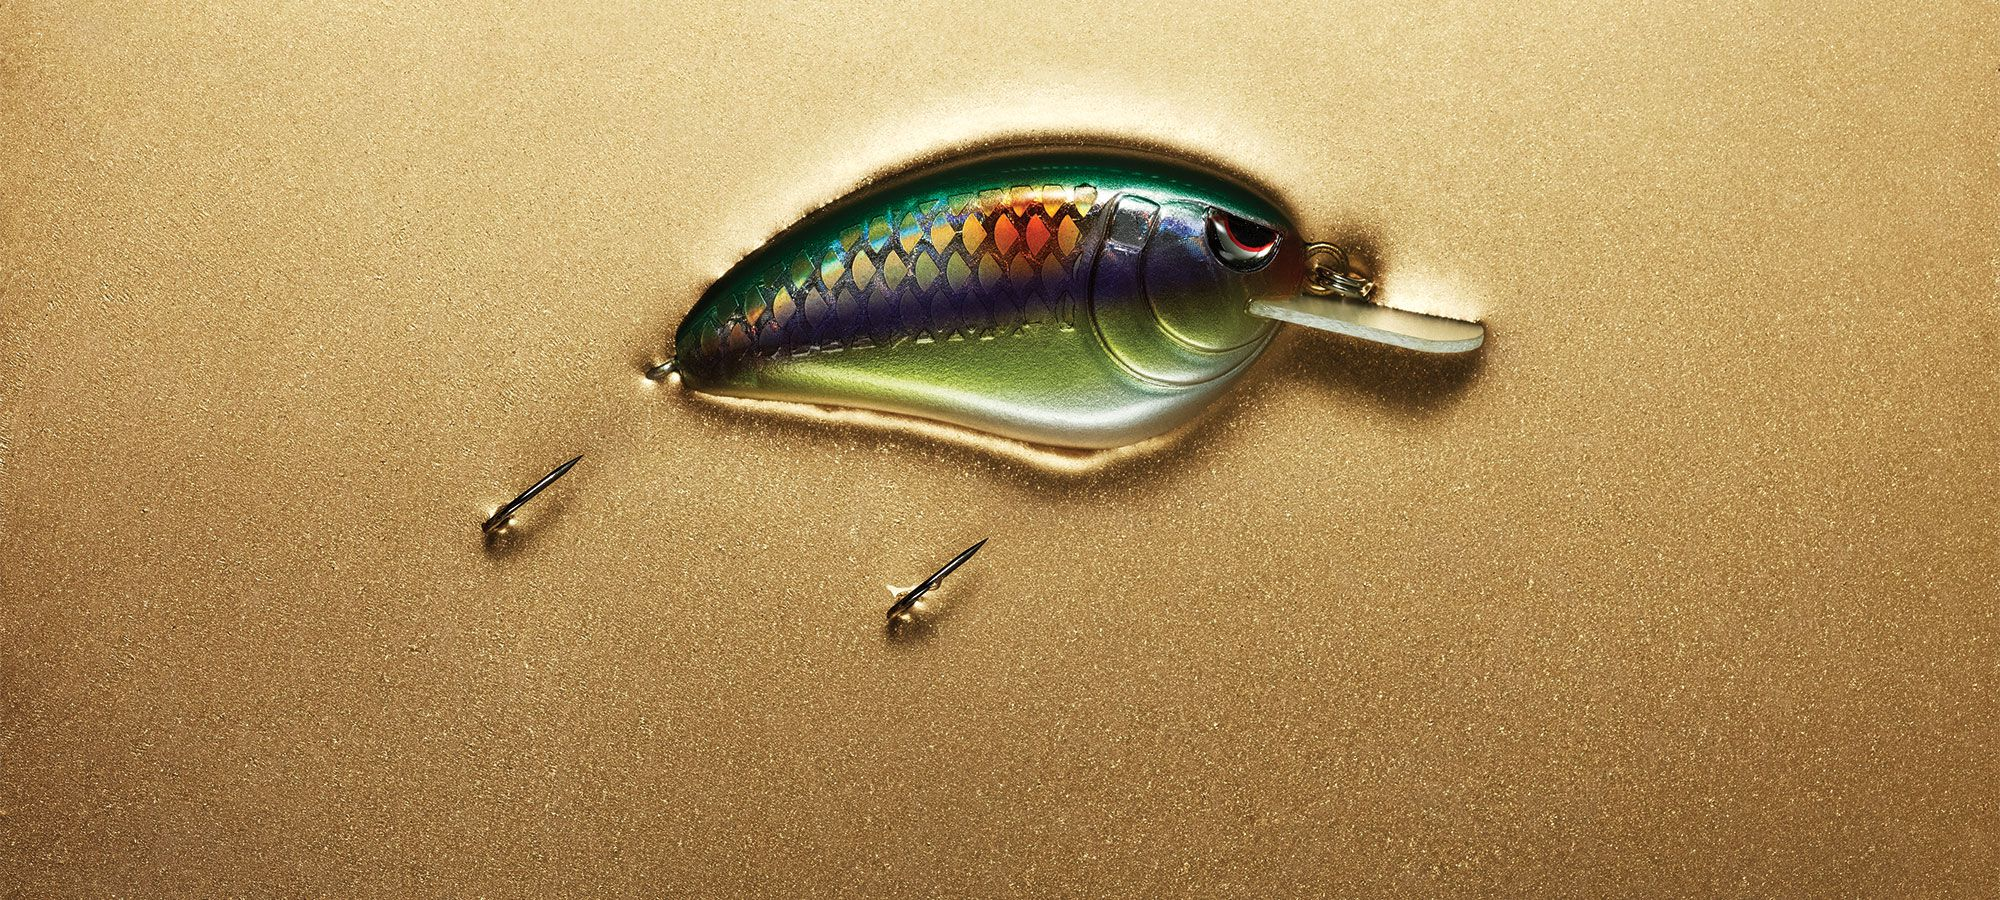 custom made trout bass fishing lures spinners value pack of 6 Discounted